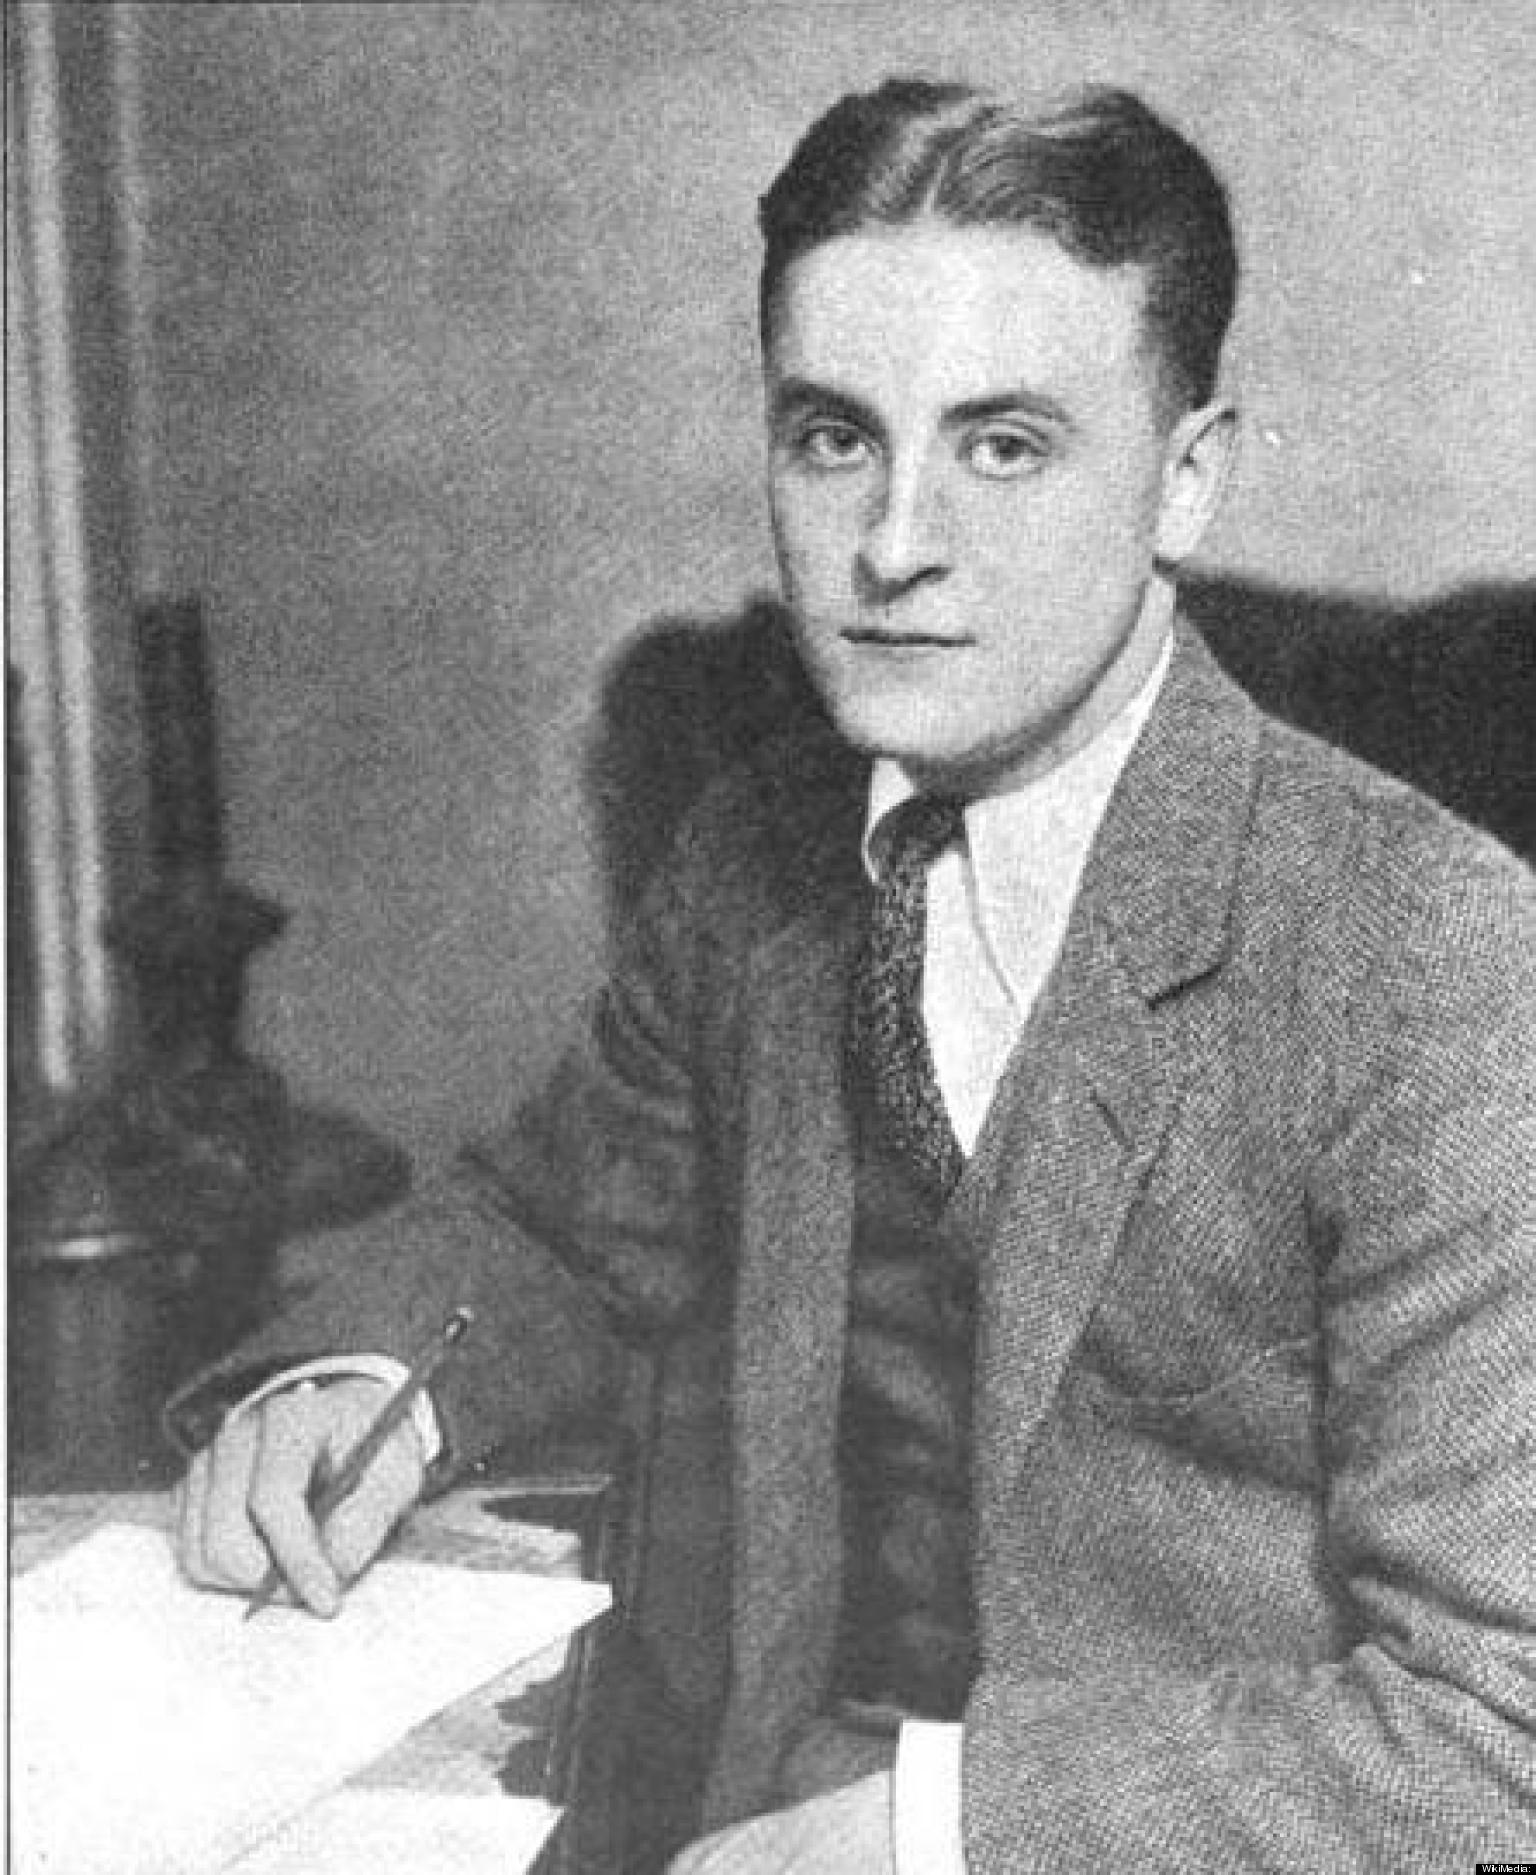 F Scott Fitzgerald Army F. Scott Fitzgerald in...